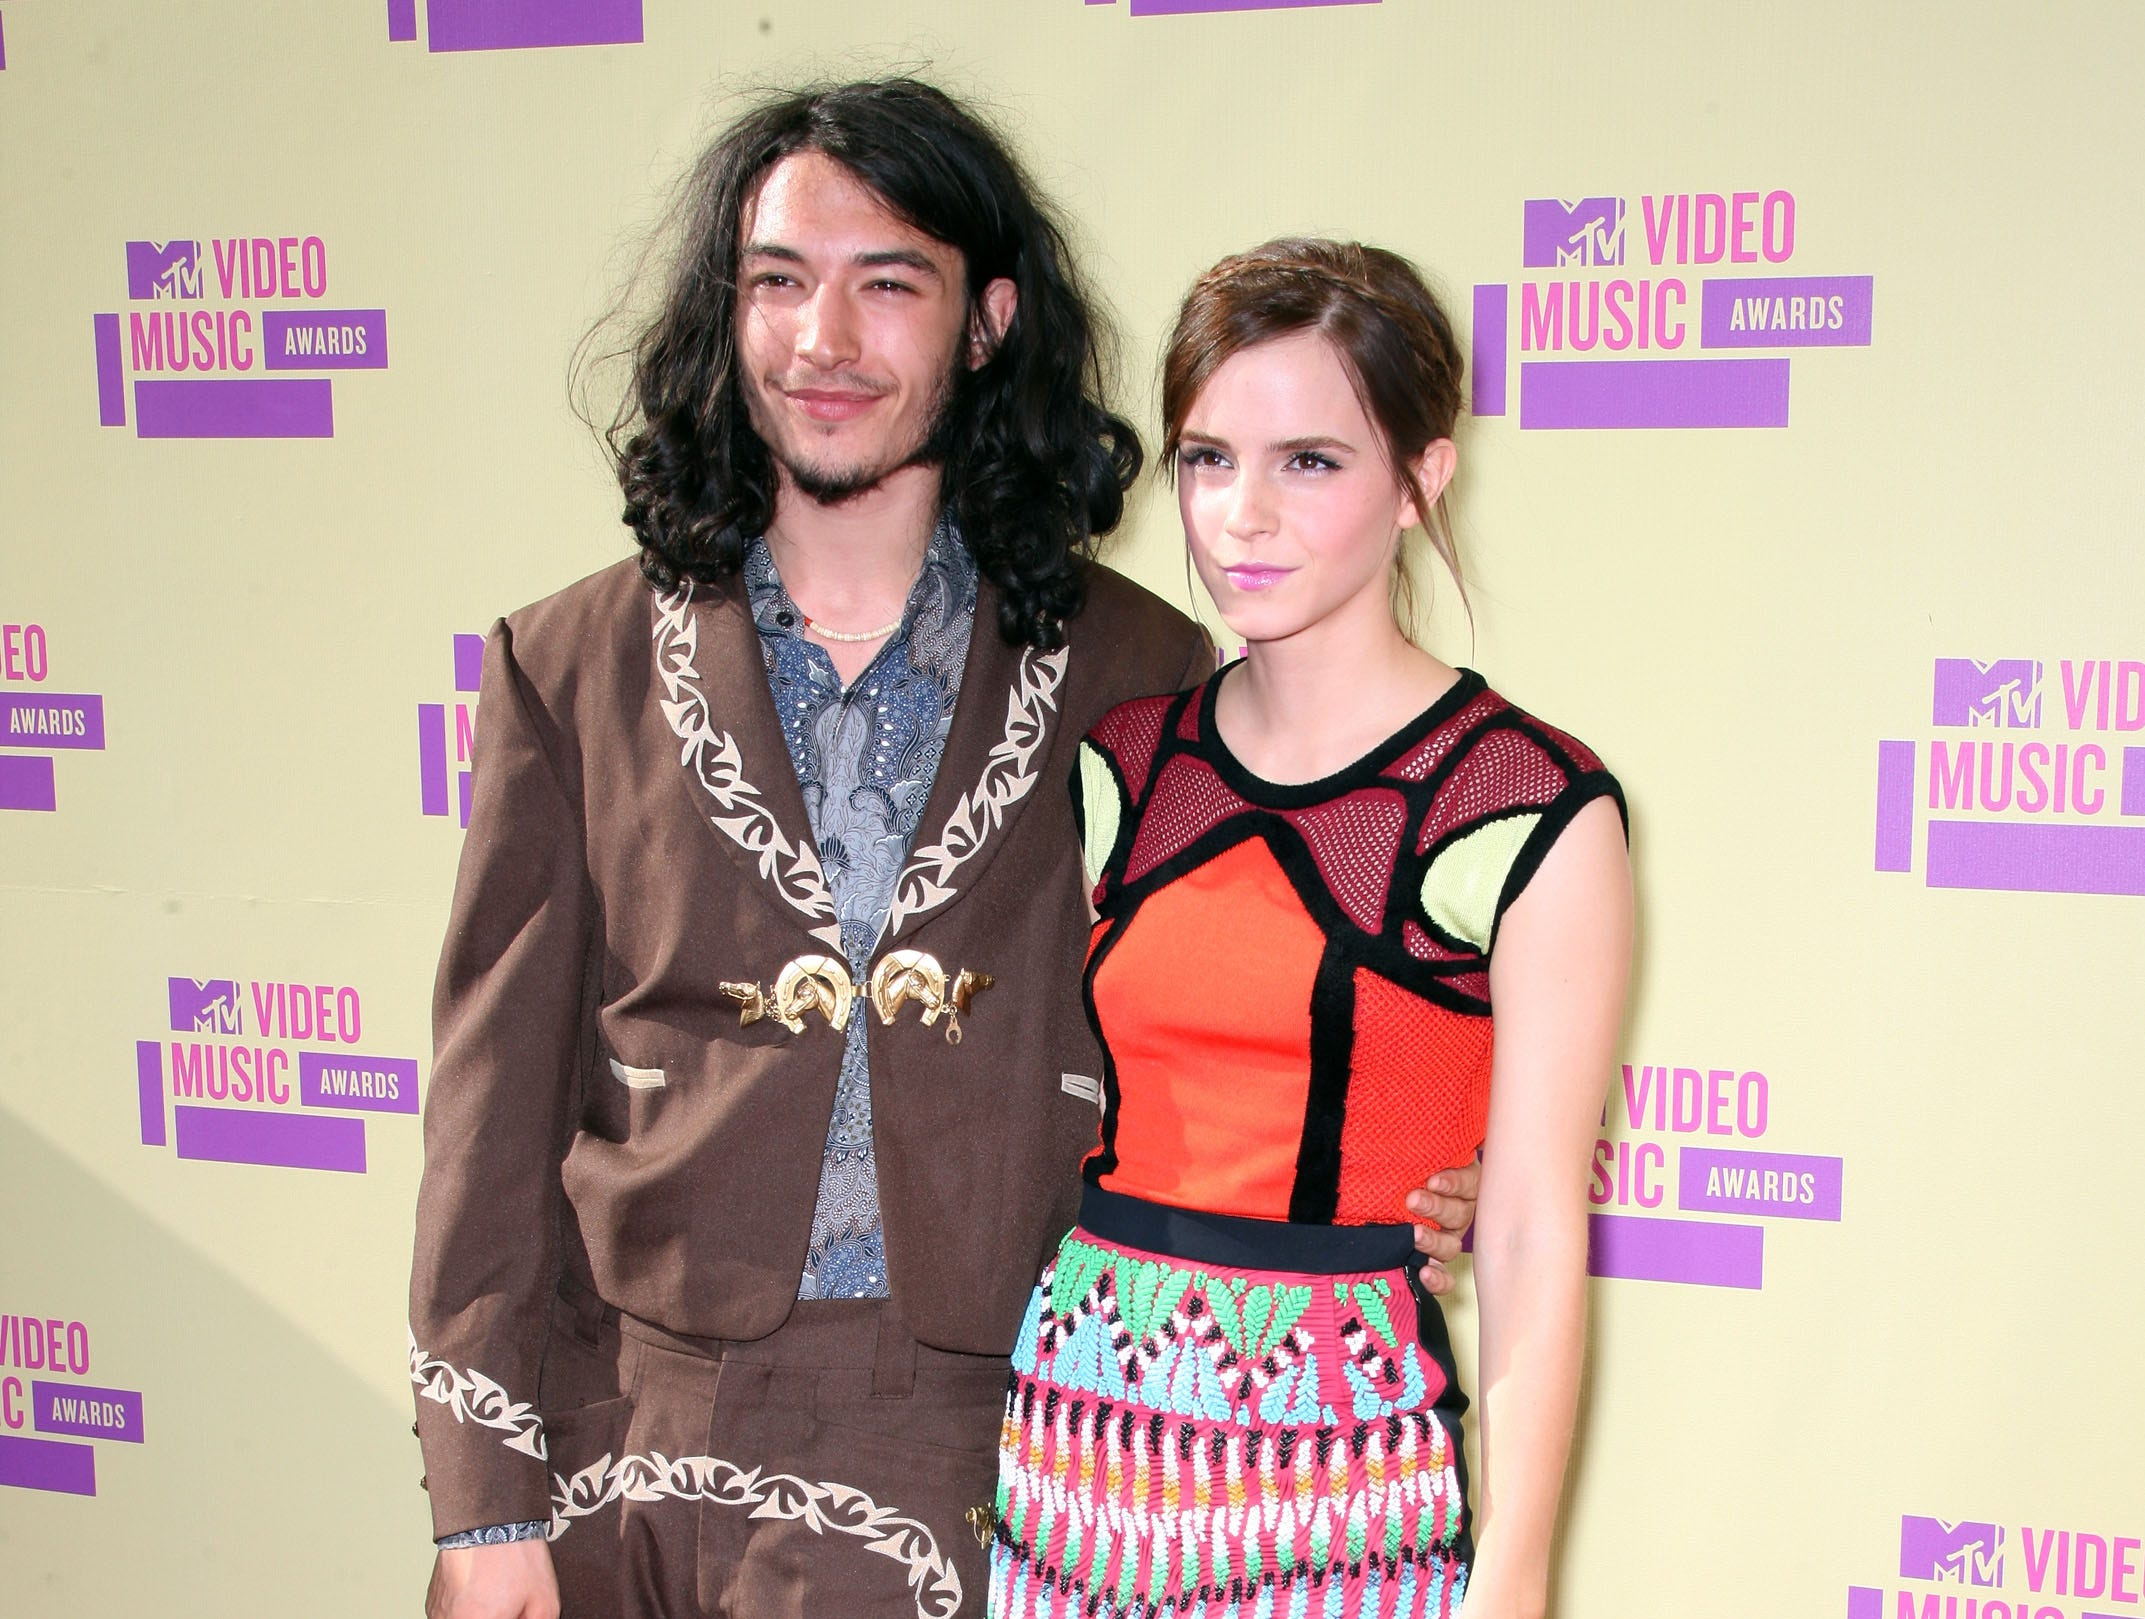 LOS ANGELES, CA - SEPTEMBER 06:  Actors Ezra Miller (L) and Emma Watson arrive at the 2012 MTV Video Music Awards at Staples Center on September 6, 2012 in Los Angeles, California.  (Photo by Frederick M. Brown/Getty Images) ORG XMIT: 149866652 ORIG FILE ID: 151382635